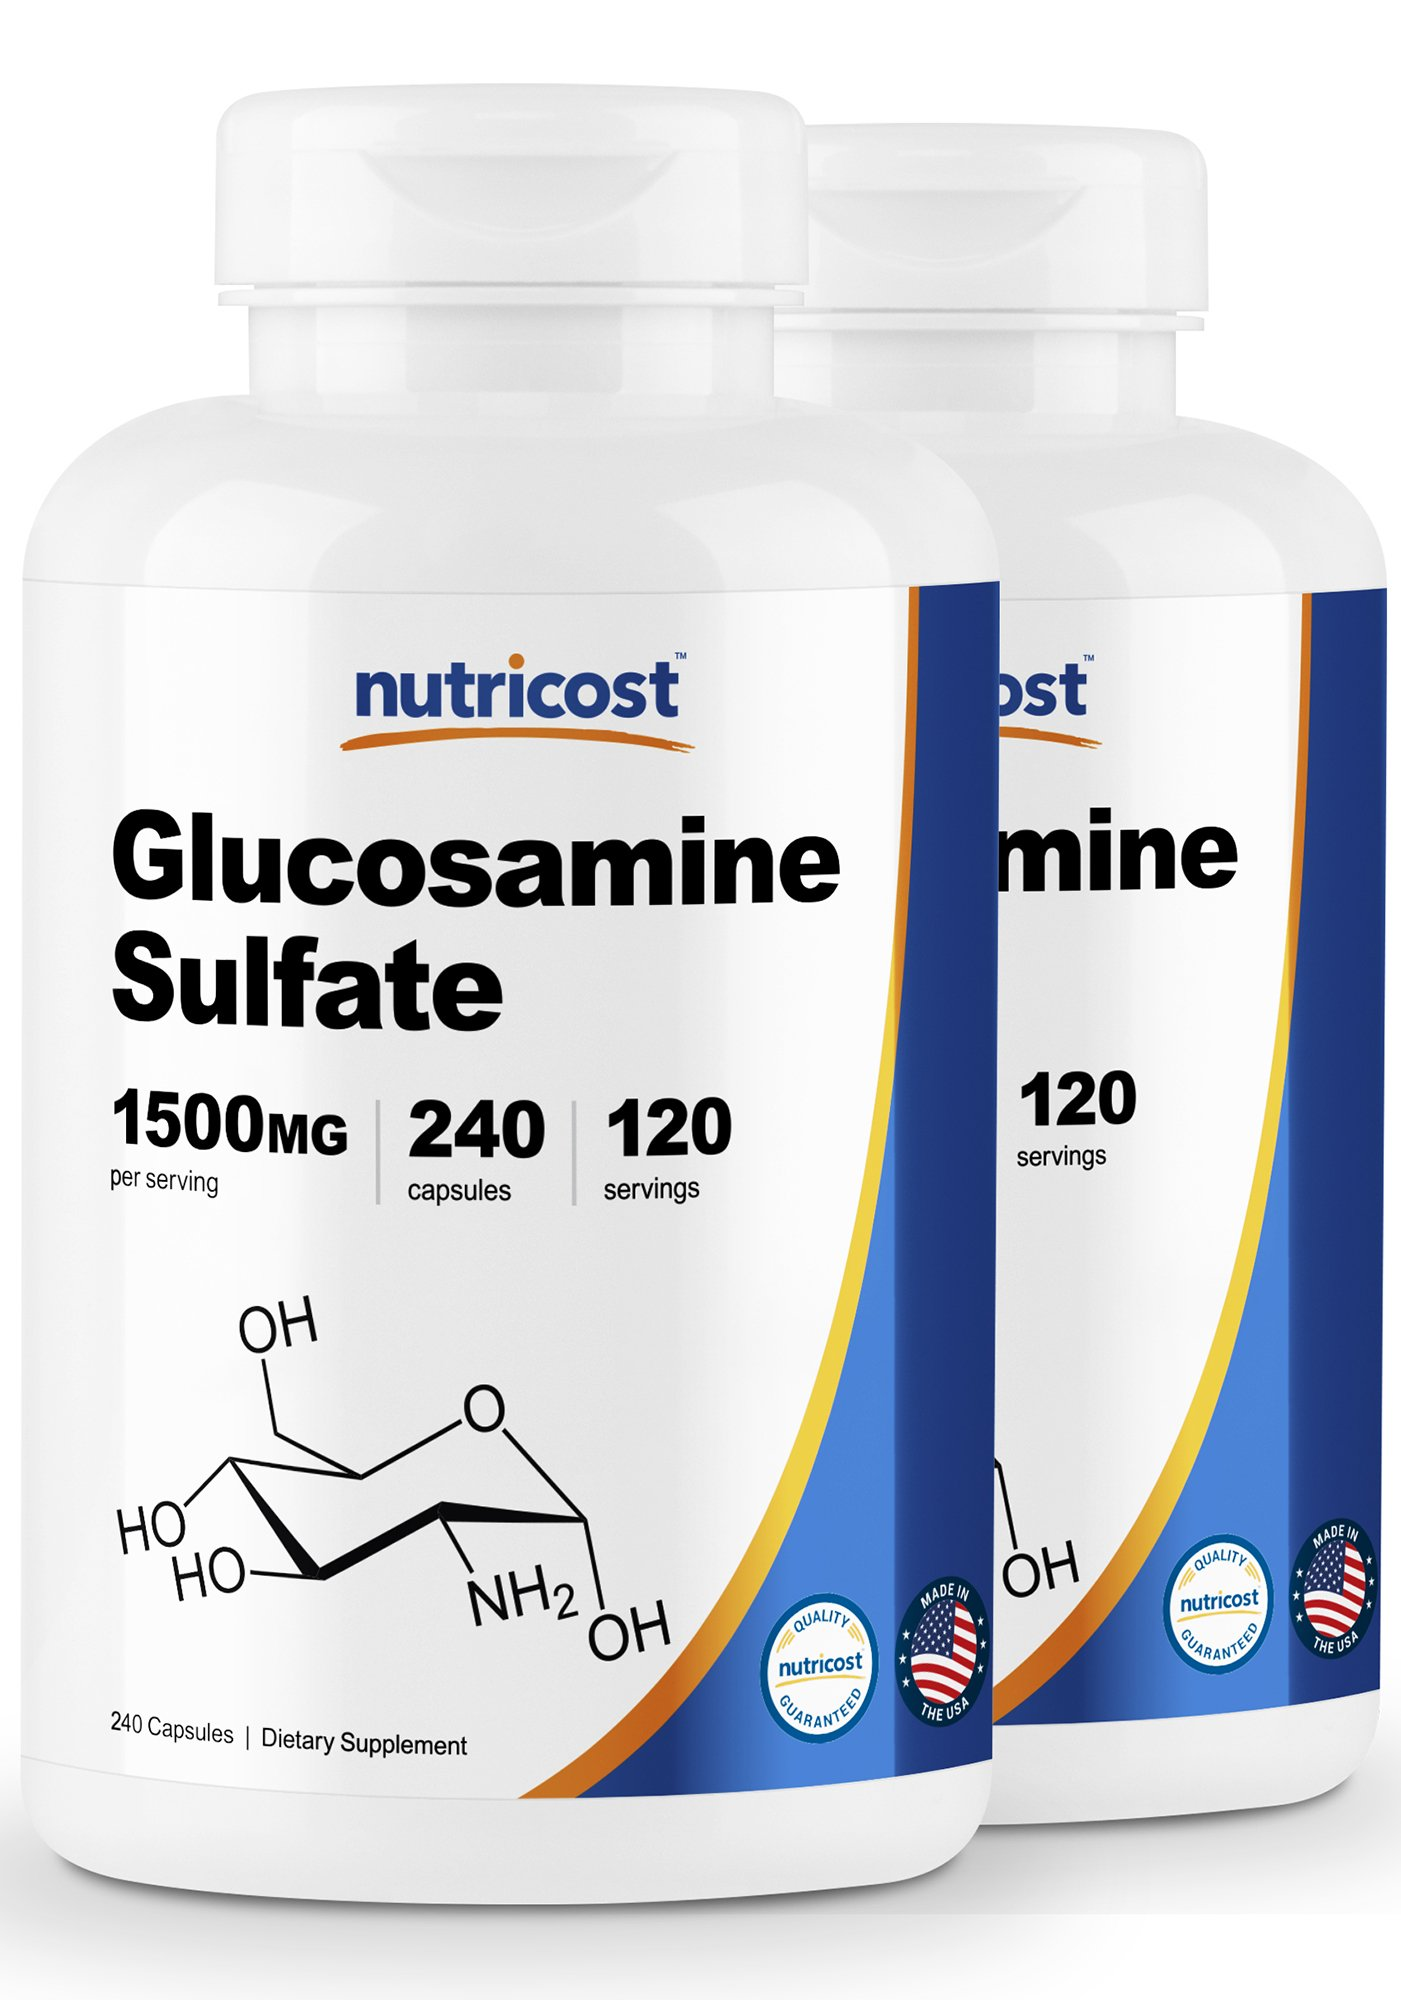 Nutricost Glucosamine Sulfate 750mg, 240 Capsules (2 Bottles) (1500mg per Serving)